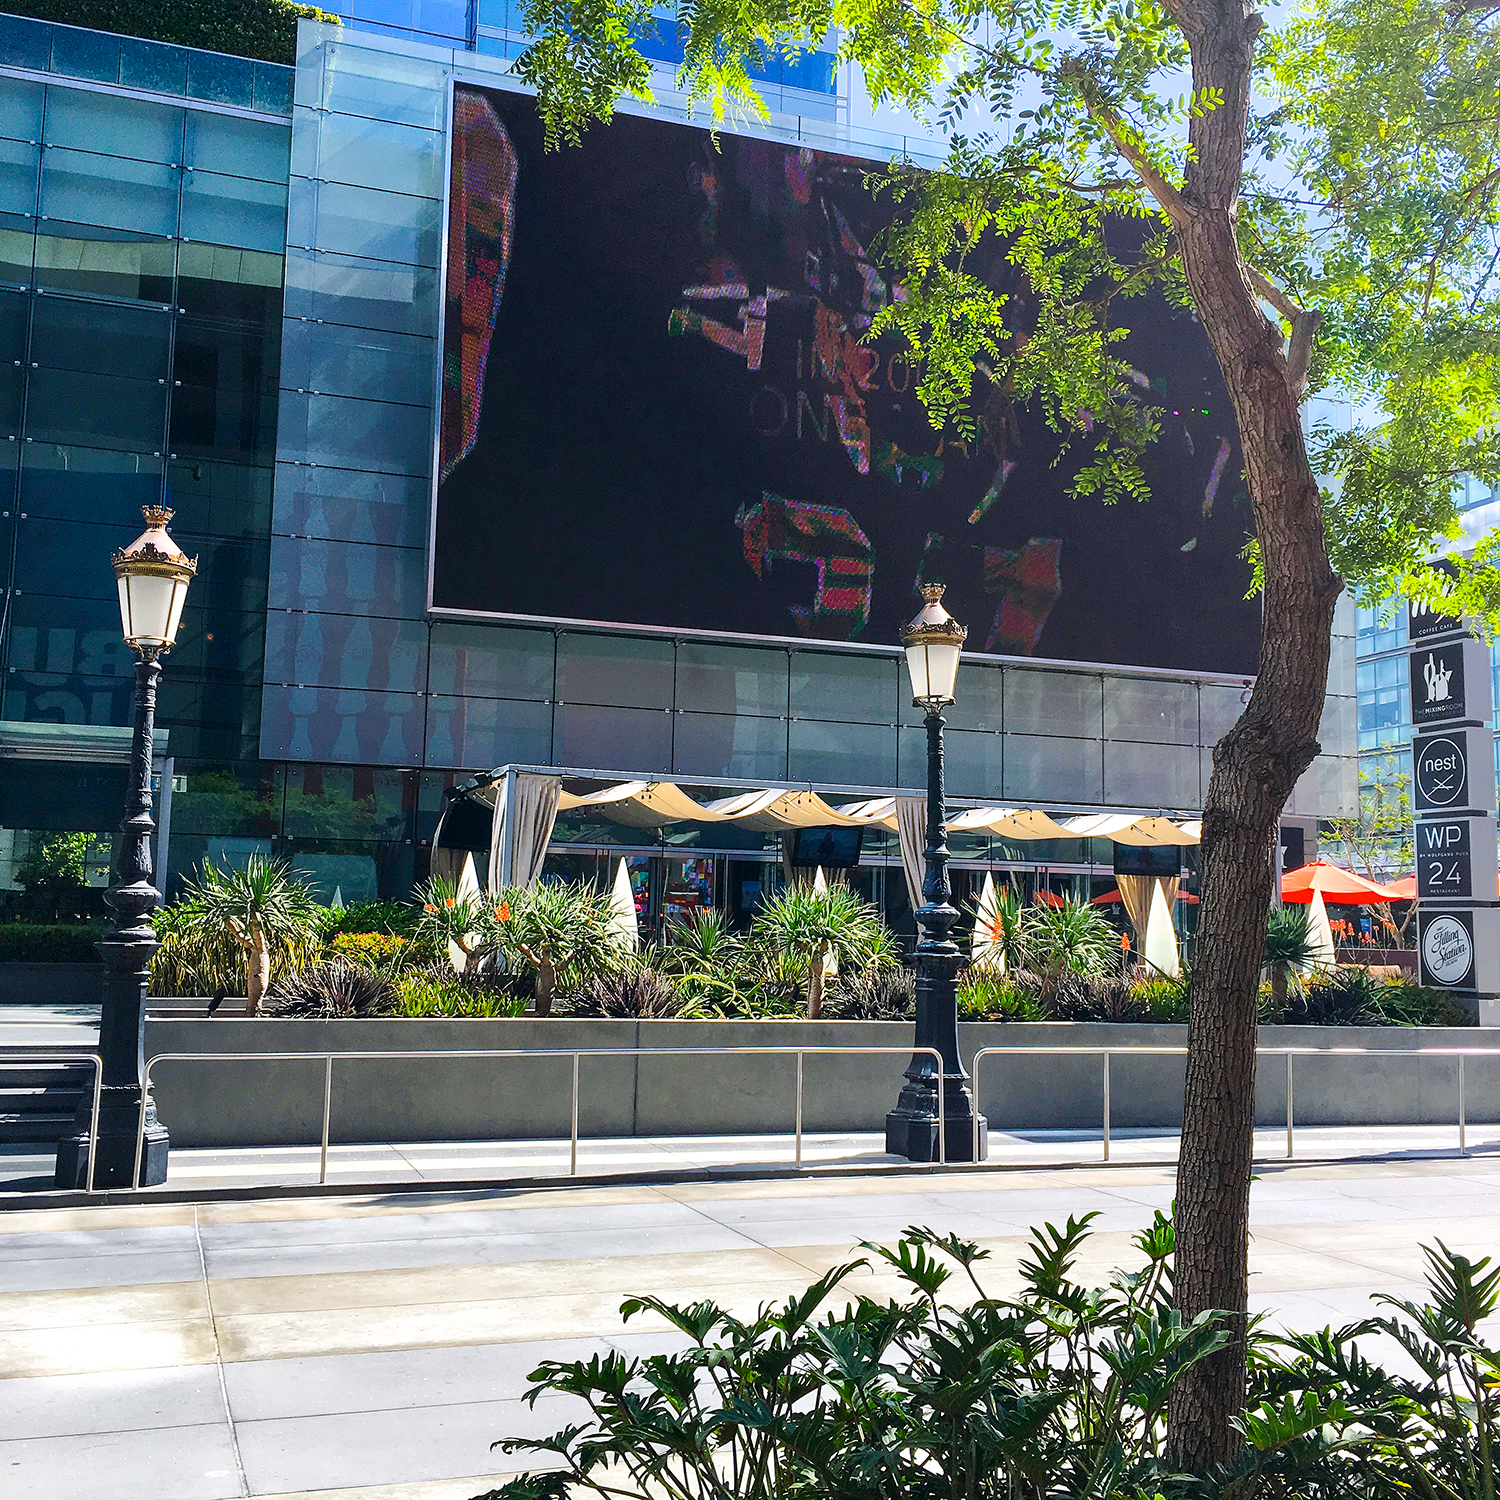 Travel to Los Angeles, California. J.W. Marriott hotel, Downtown,